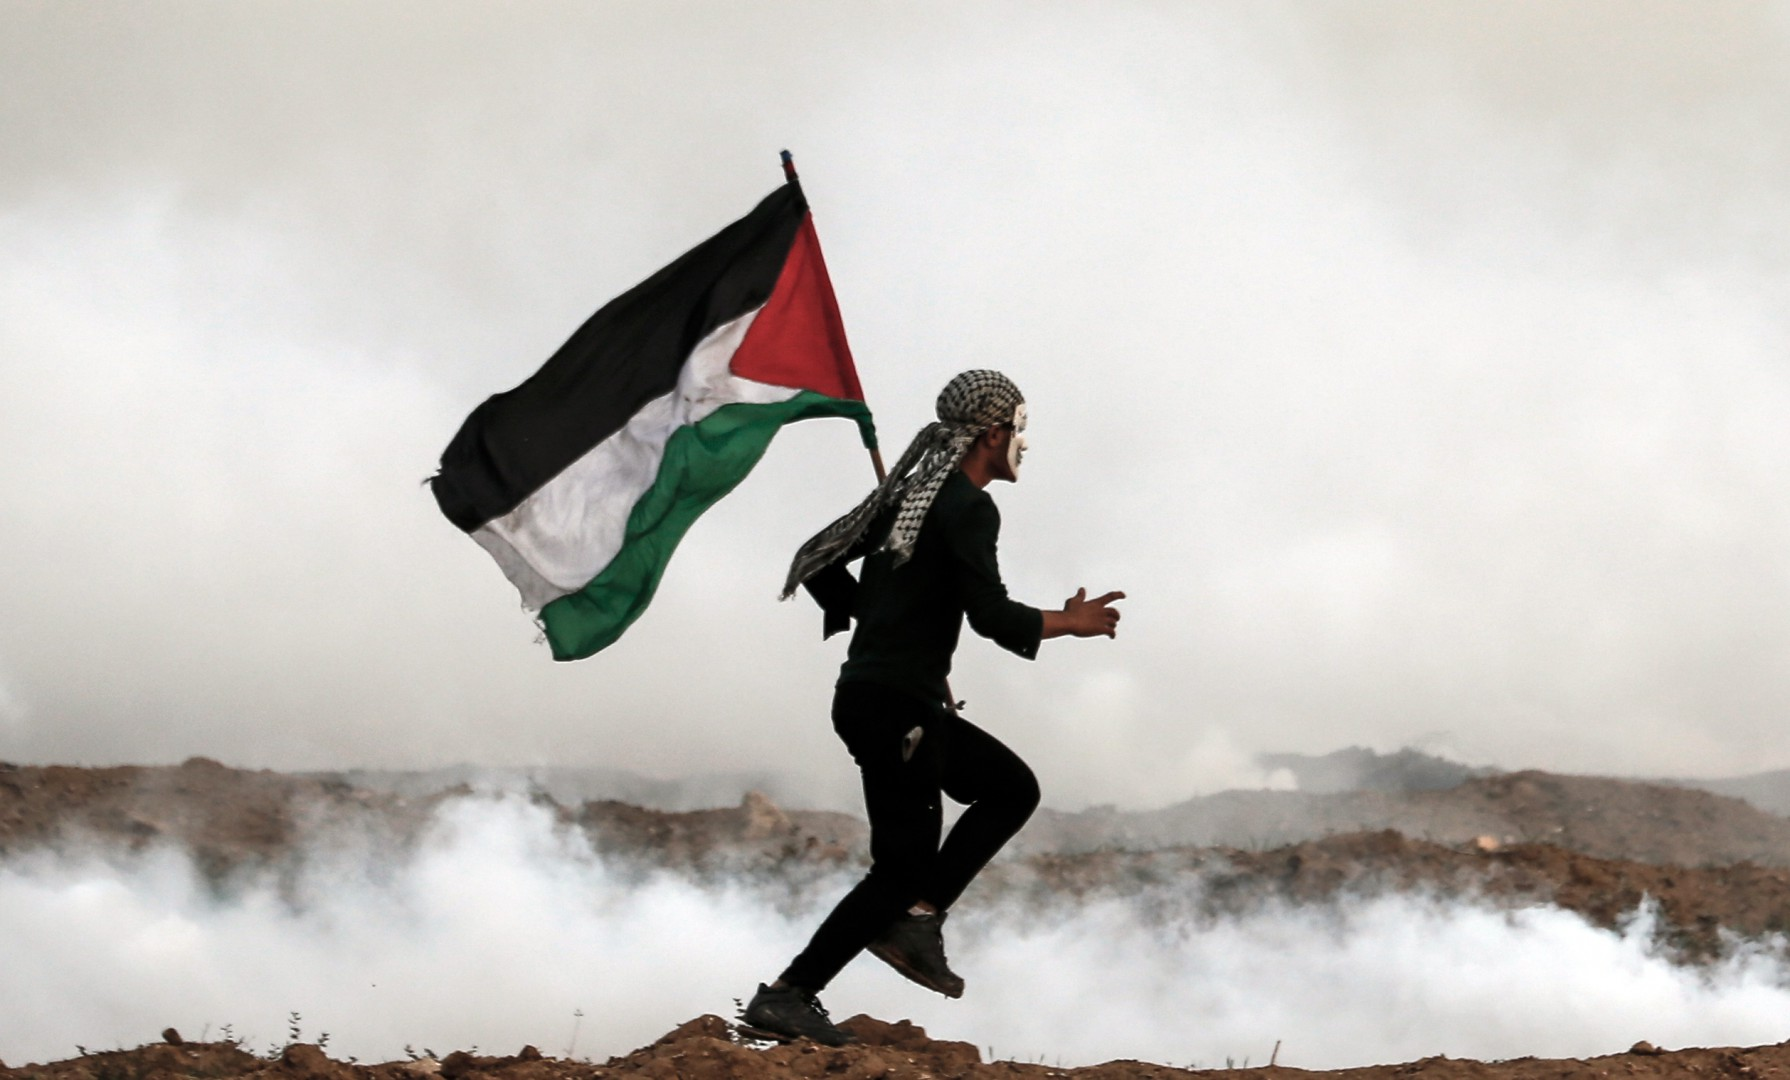 A Palestinian man holds the national flag as he runs through teargas during a protest on November 16, 2018, on the eastern outskirts of Gaza City, near the border with Israel. (Photo by MAHMUD HAMS / AFP)